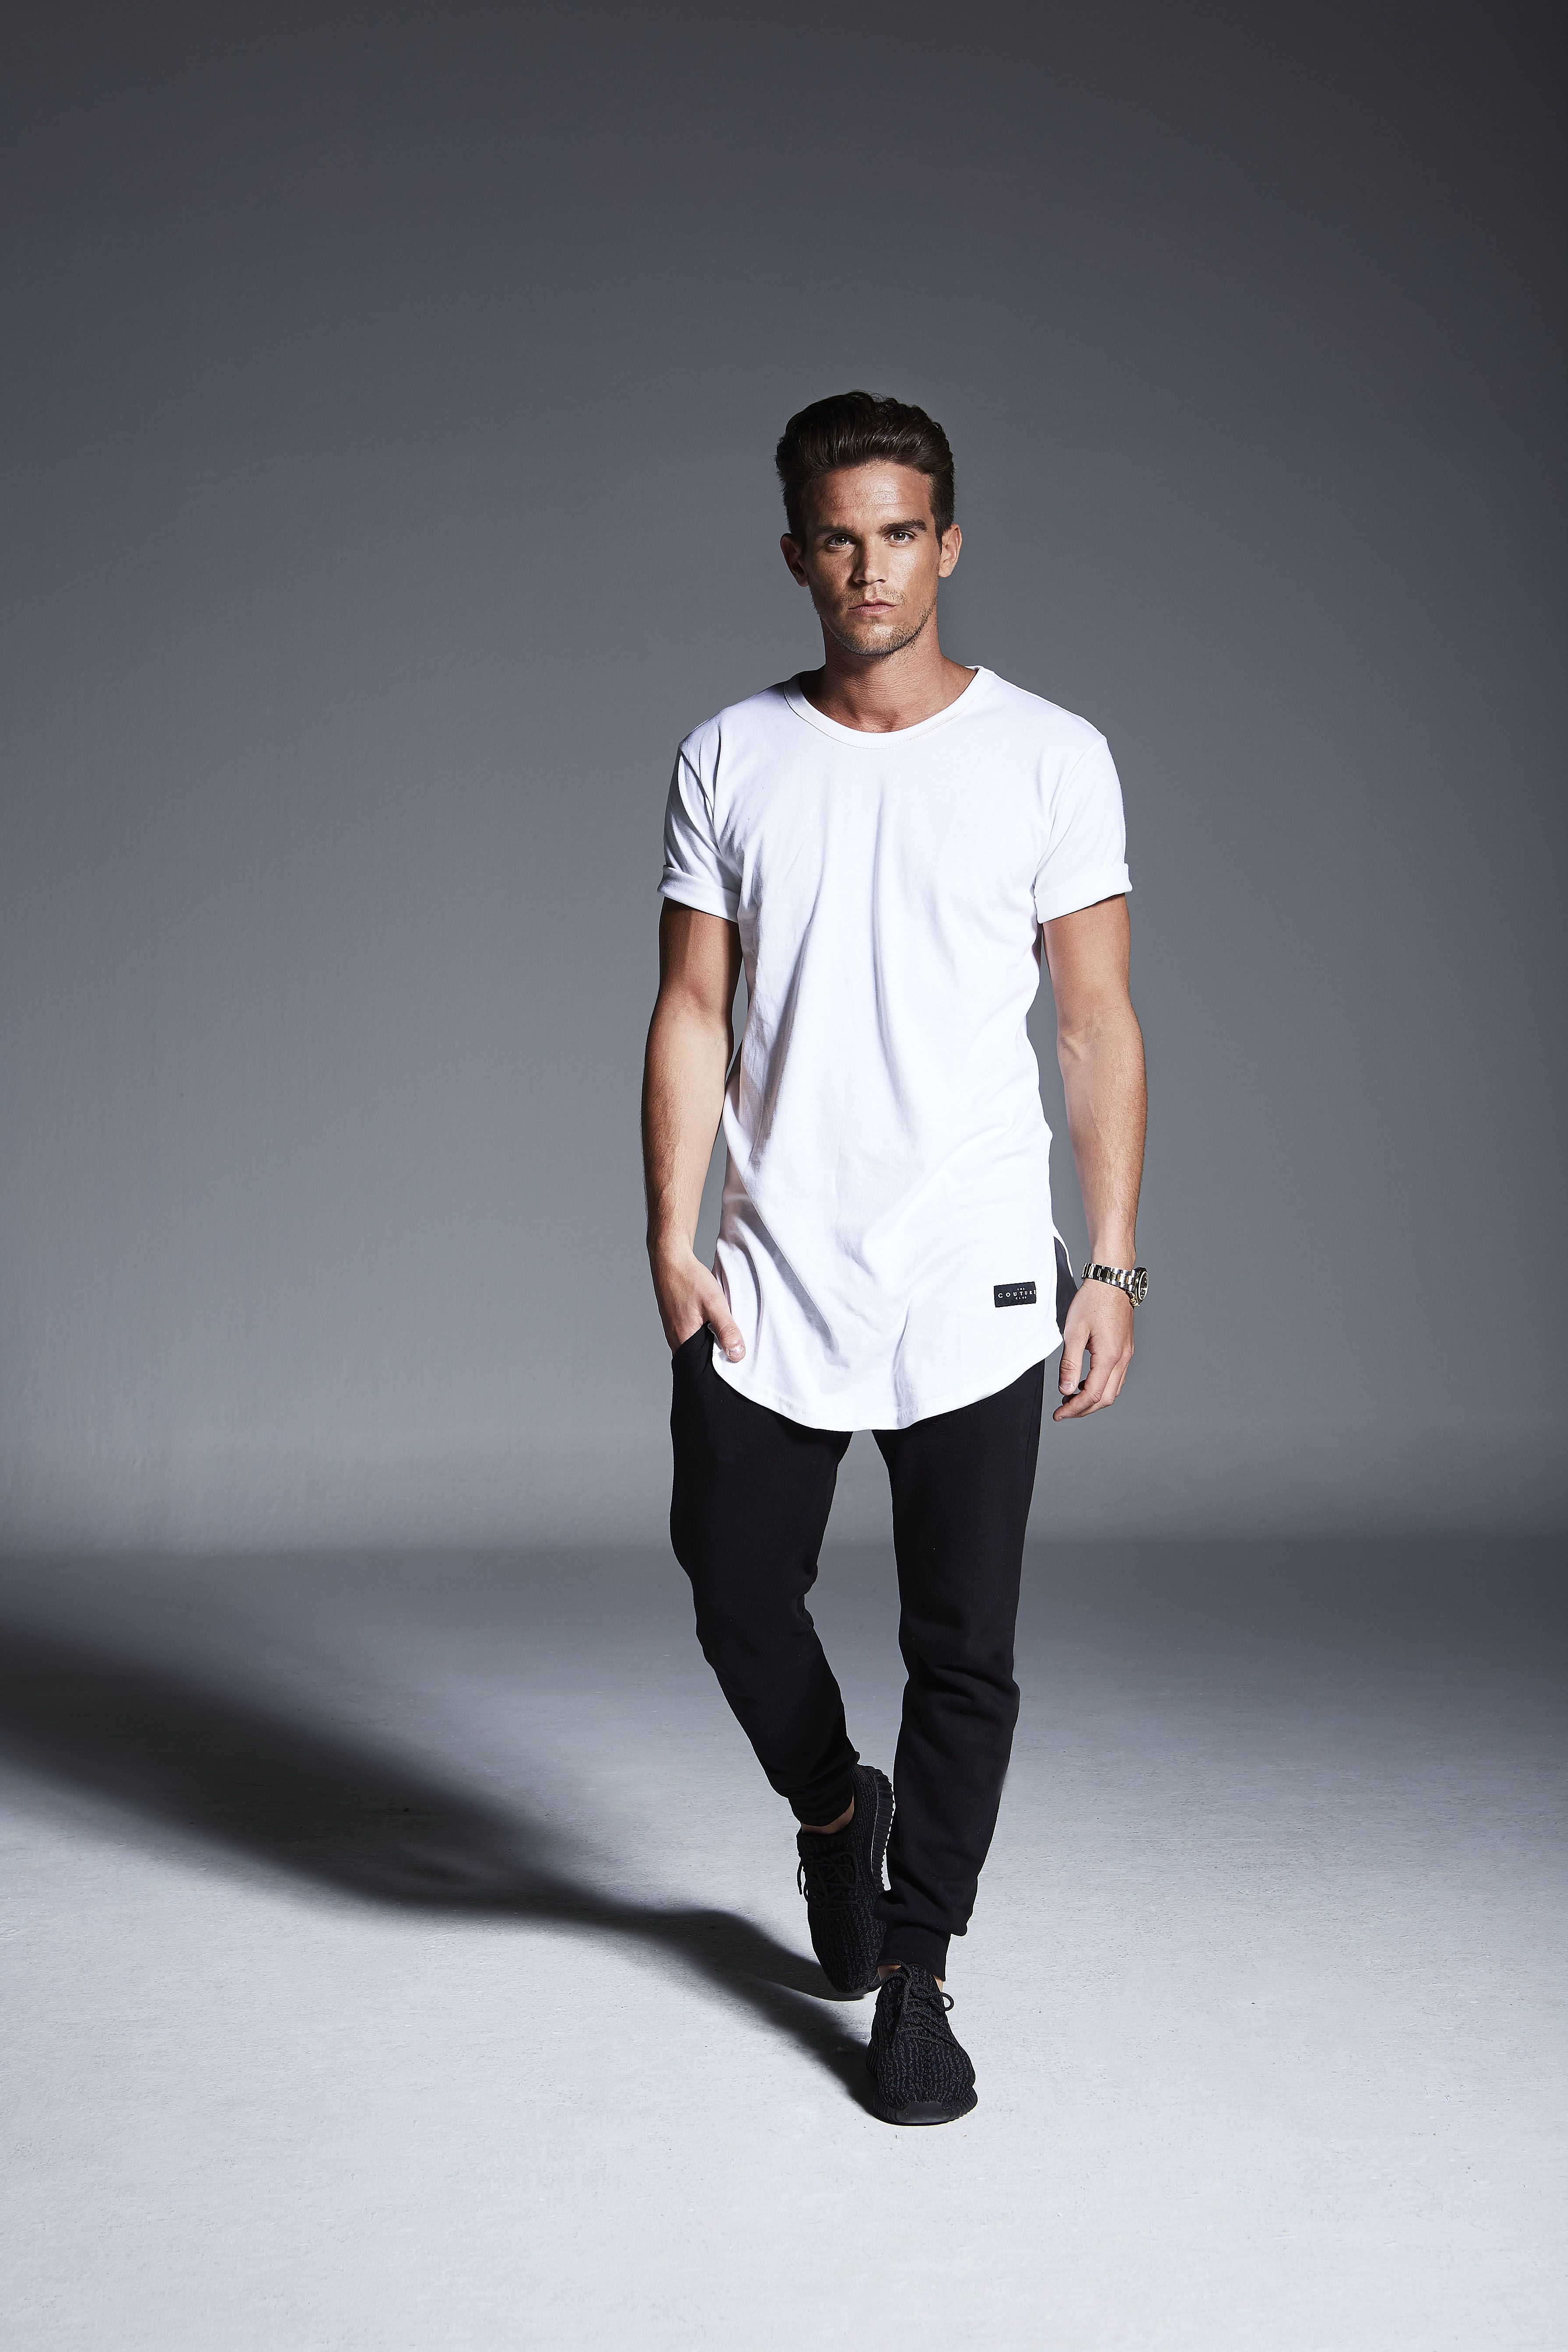 Geordie Shore OG star Gaz Beadle reveals why he was reluctant to take part in the new show